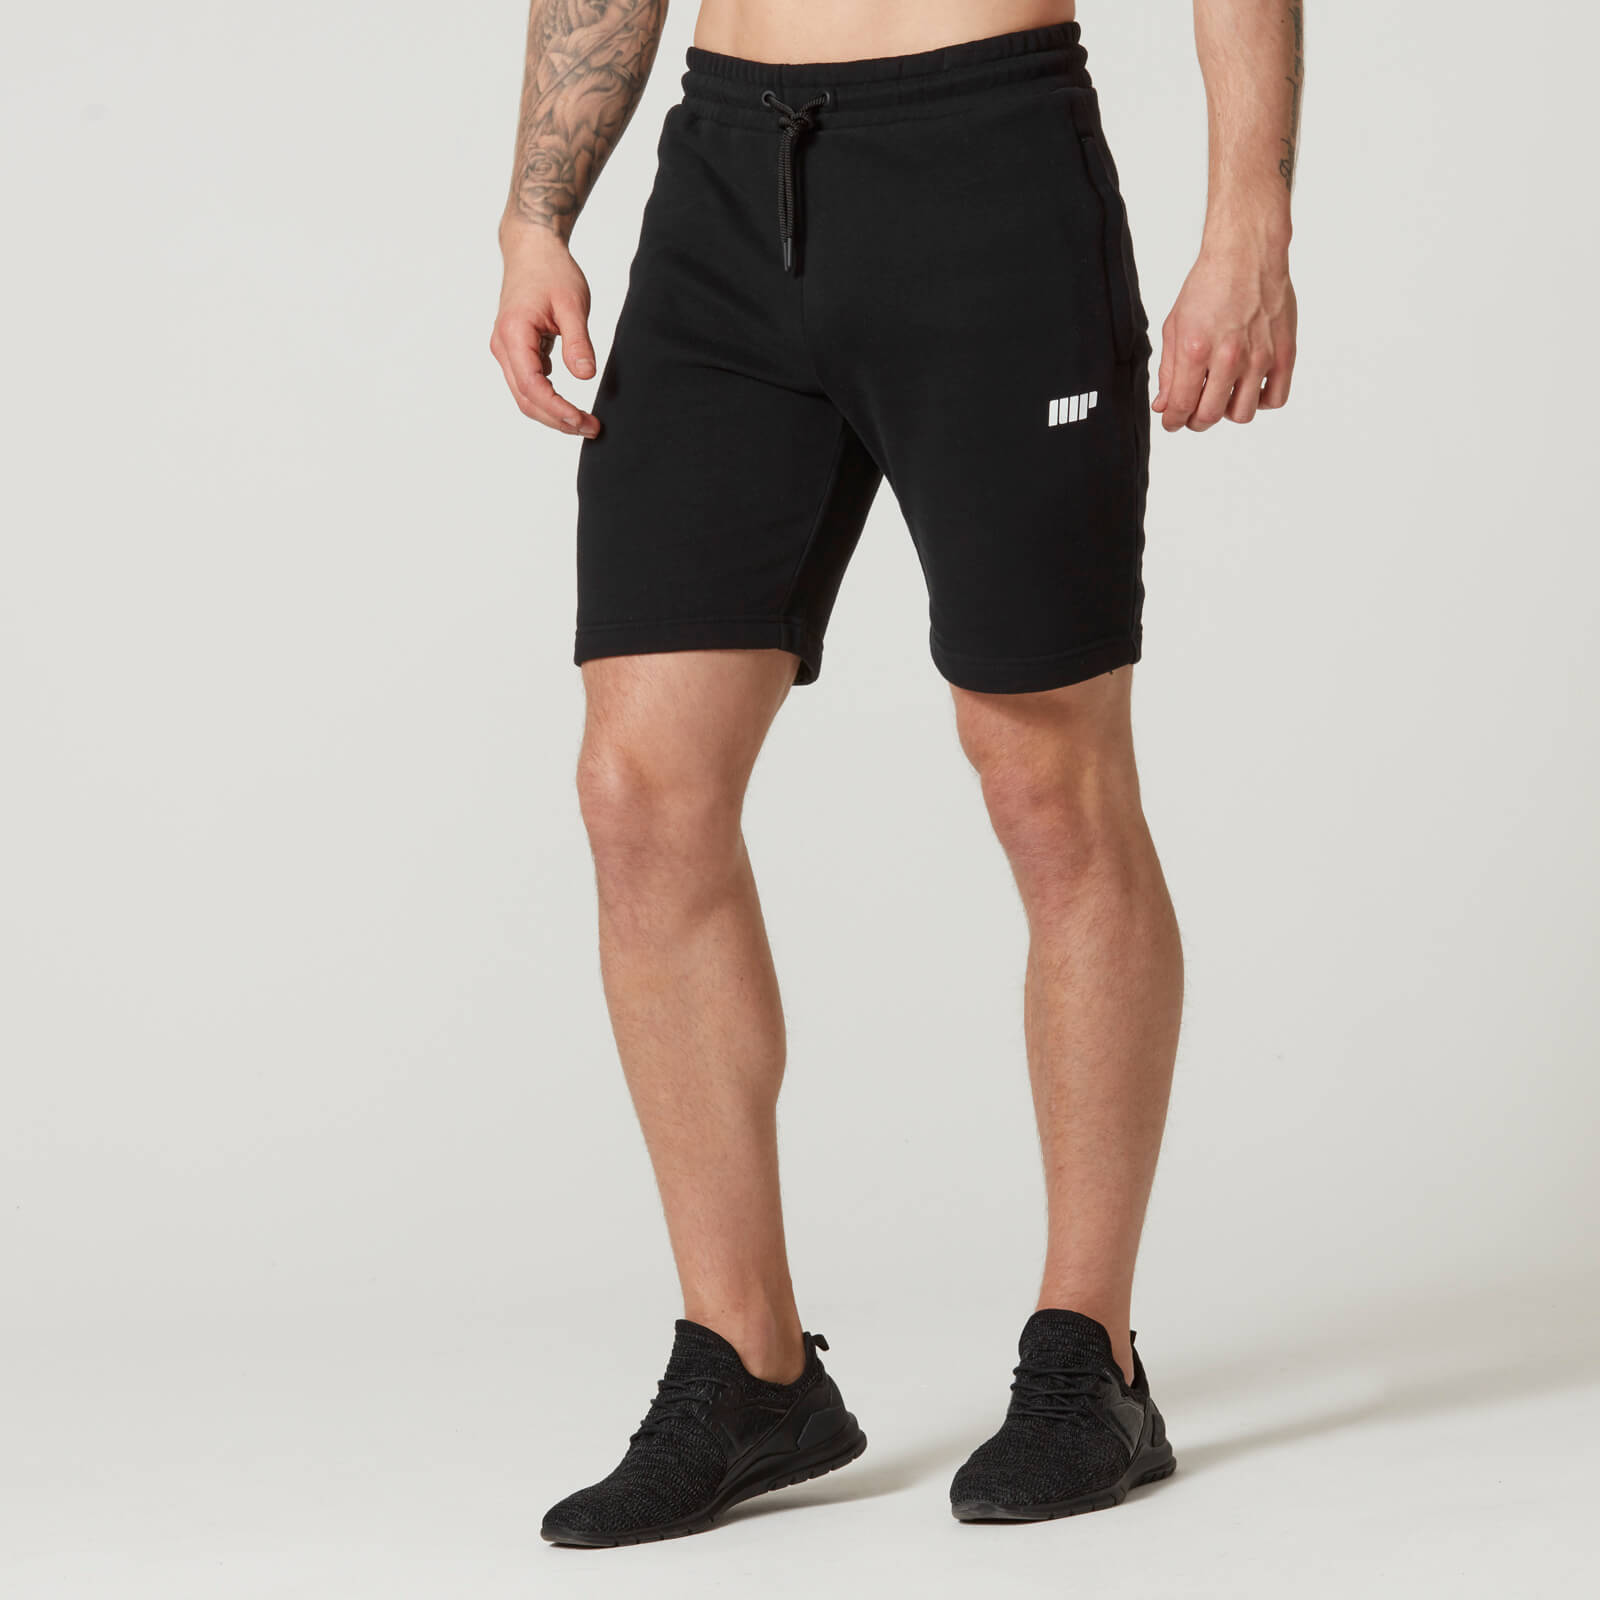 Myprotein Tru-Fit Zip Sweatshorts - Dark Green - XS